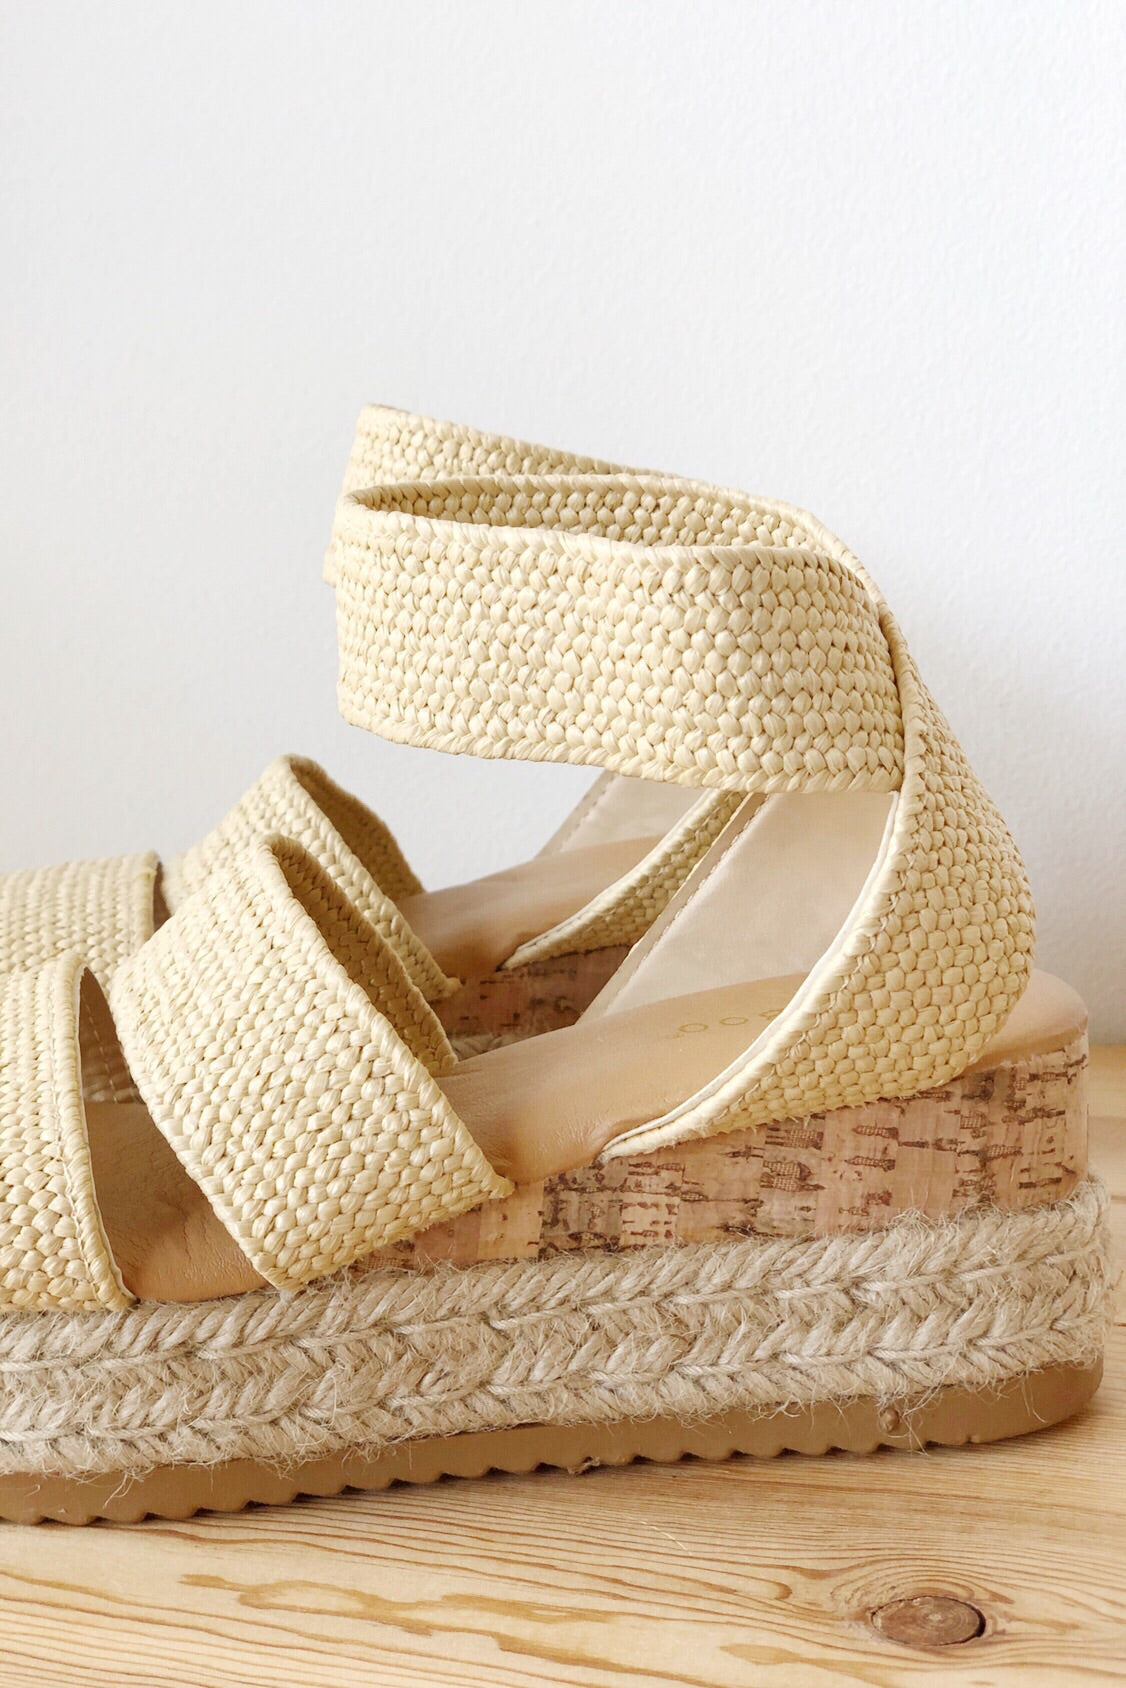 [shop name], radiate woven flatform